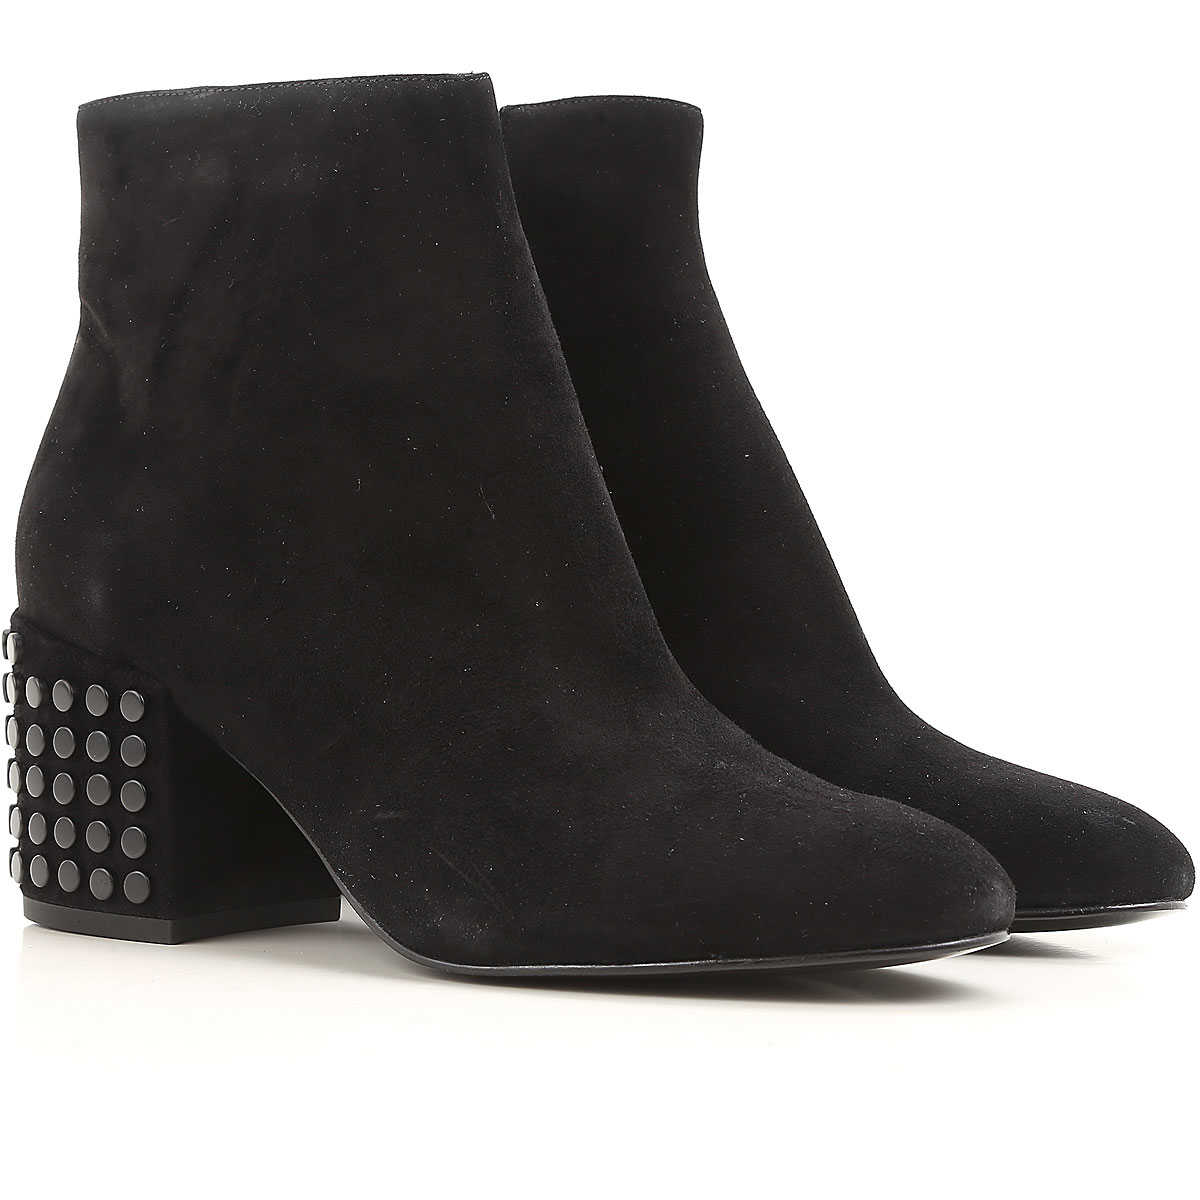 Kendall Kylie Boots for Women Booties On Sale SE - GOOFASH